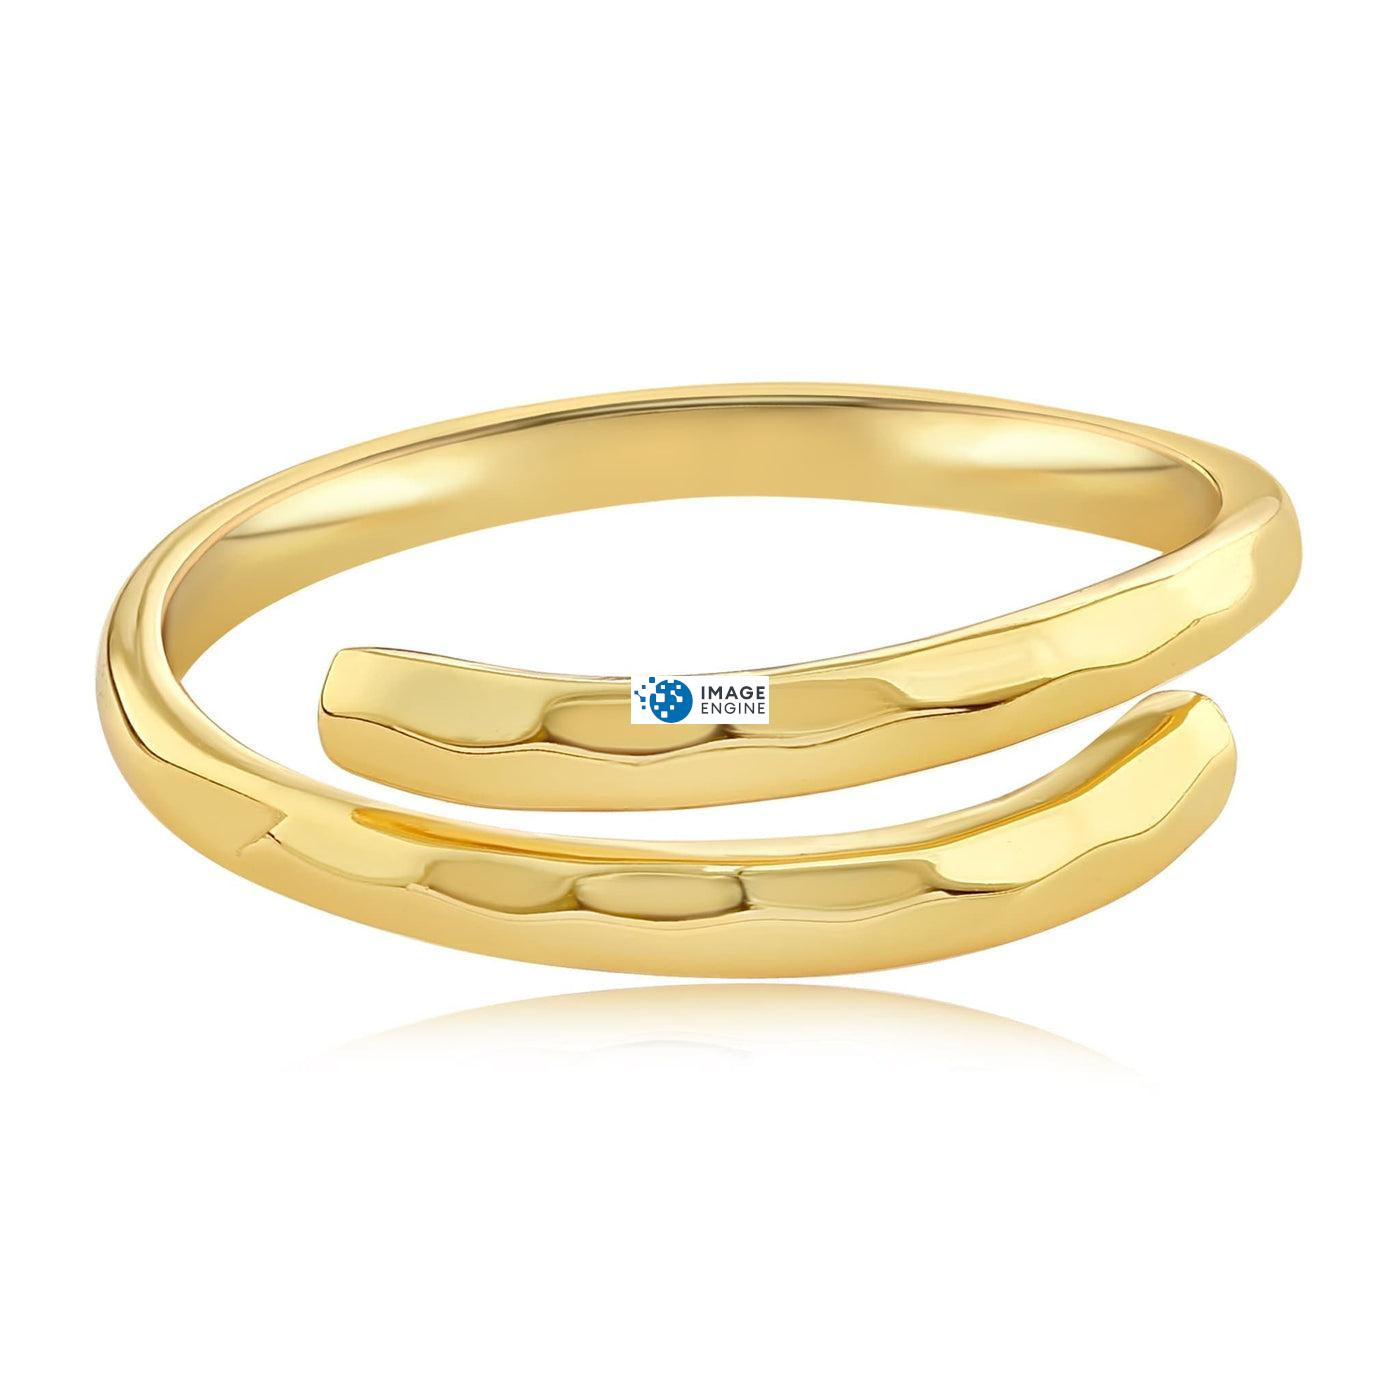 Minimalist Thumb Ring - Front View Facing Up - 18K Yellow Gold Vermeil